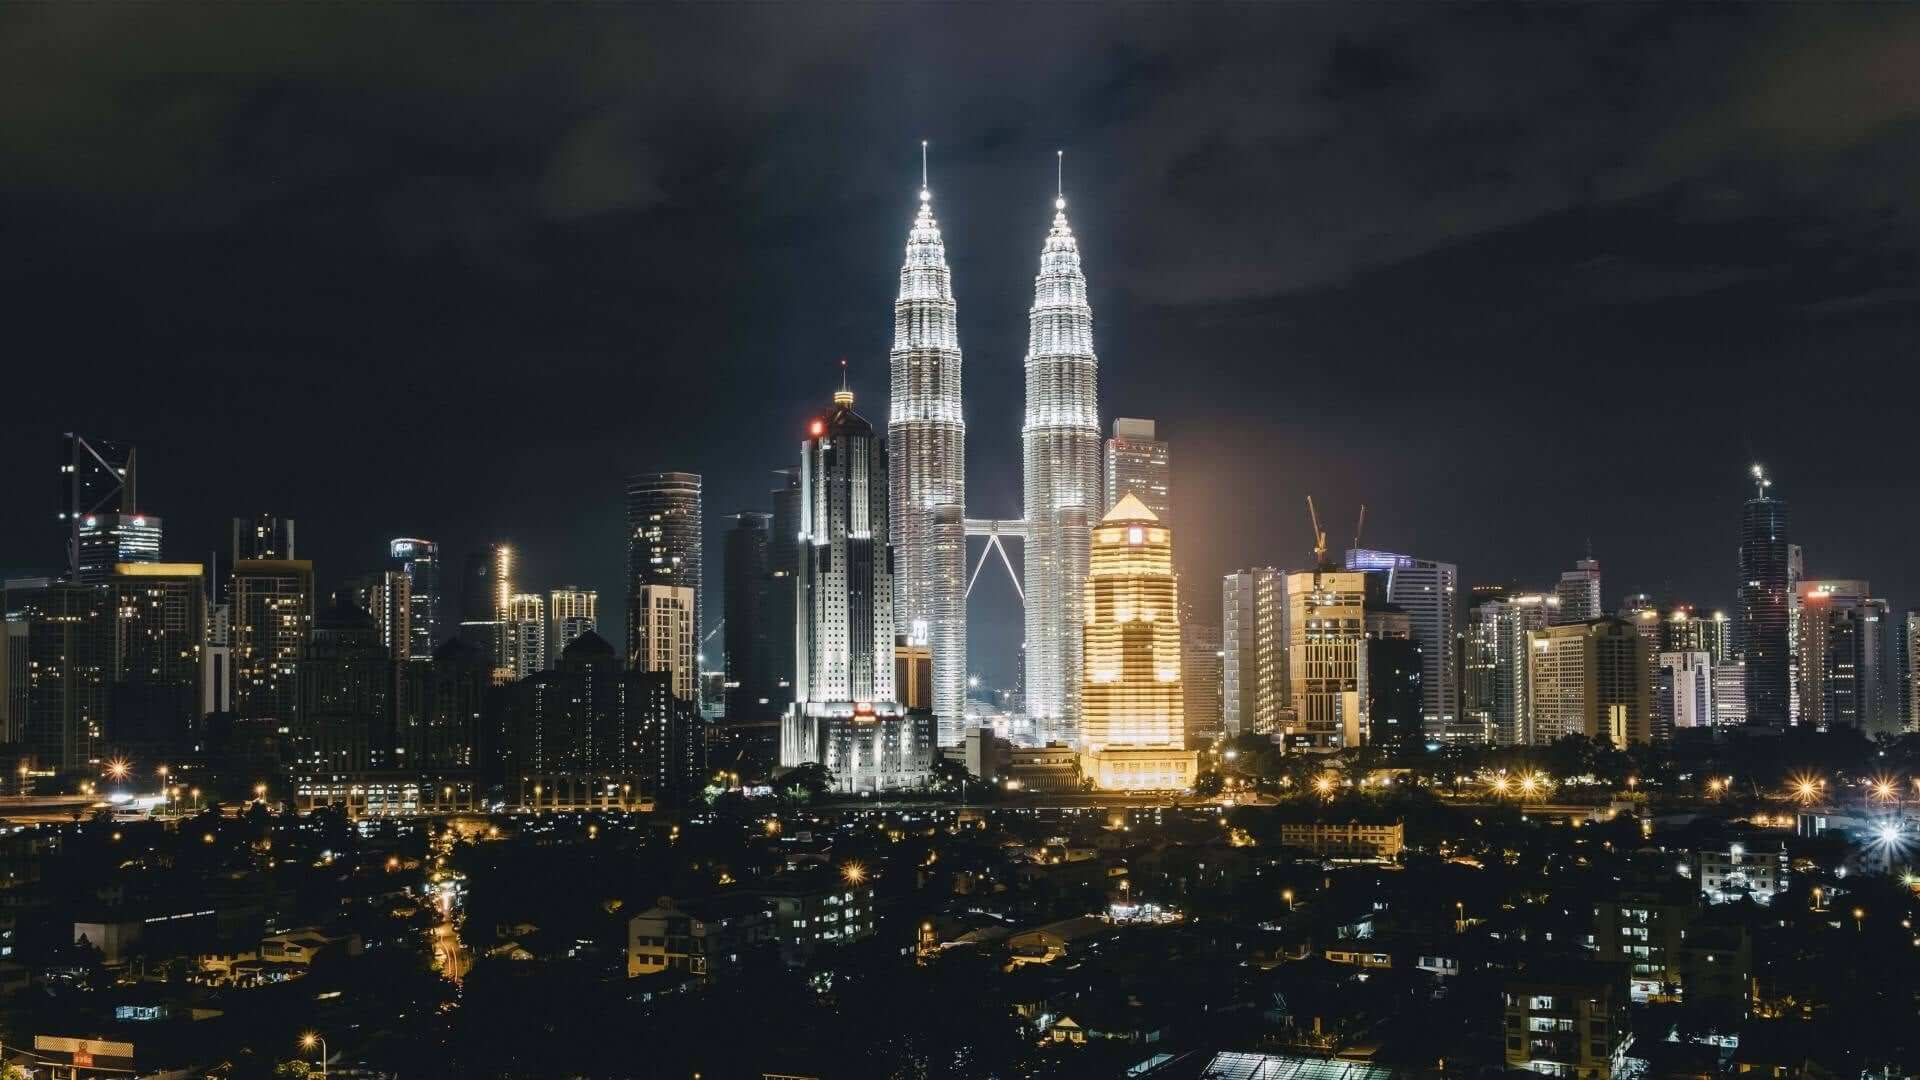 Night view of the brightly lit Petronas Towers in Kuala Lumpur.